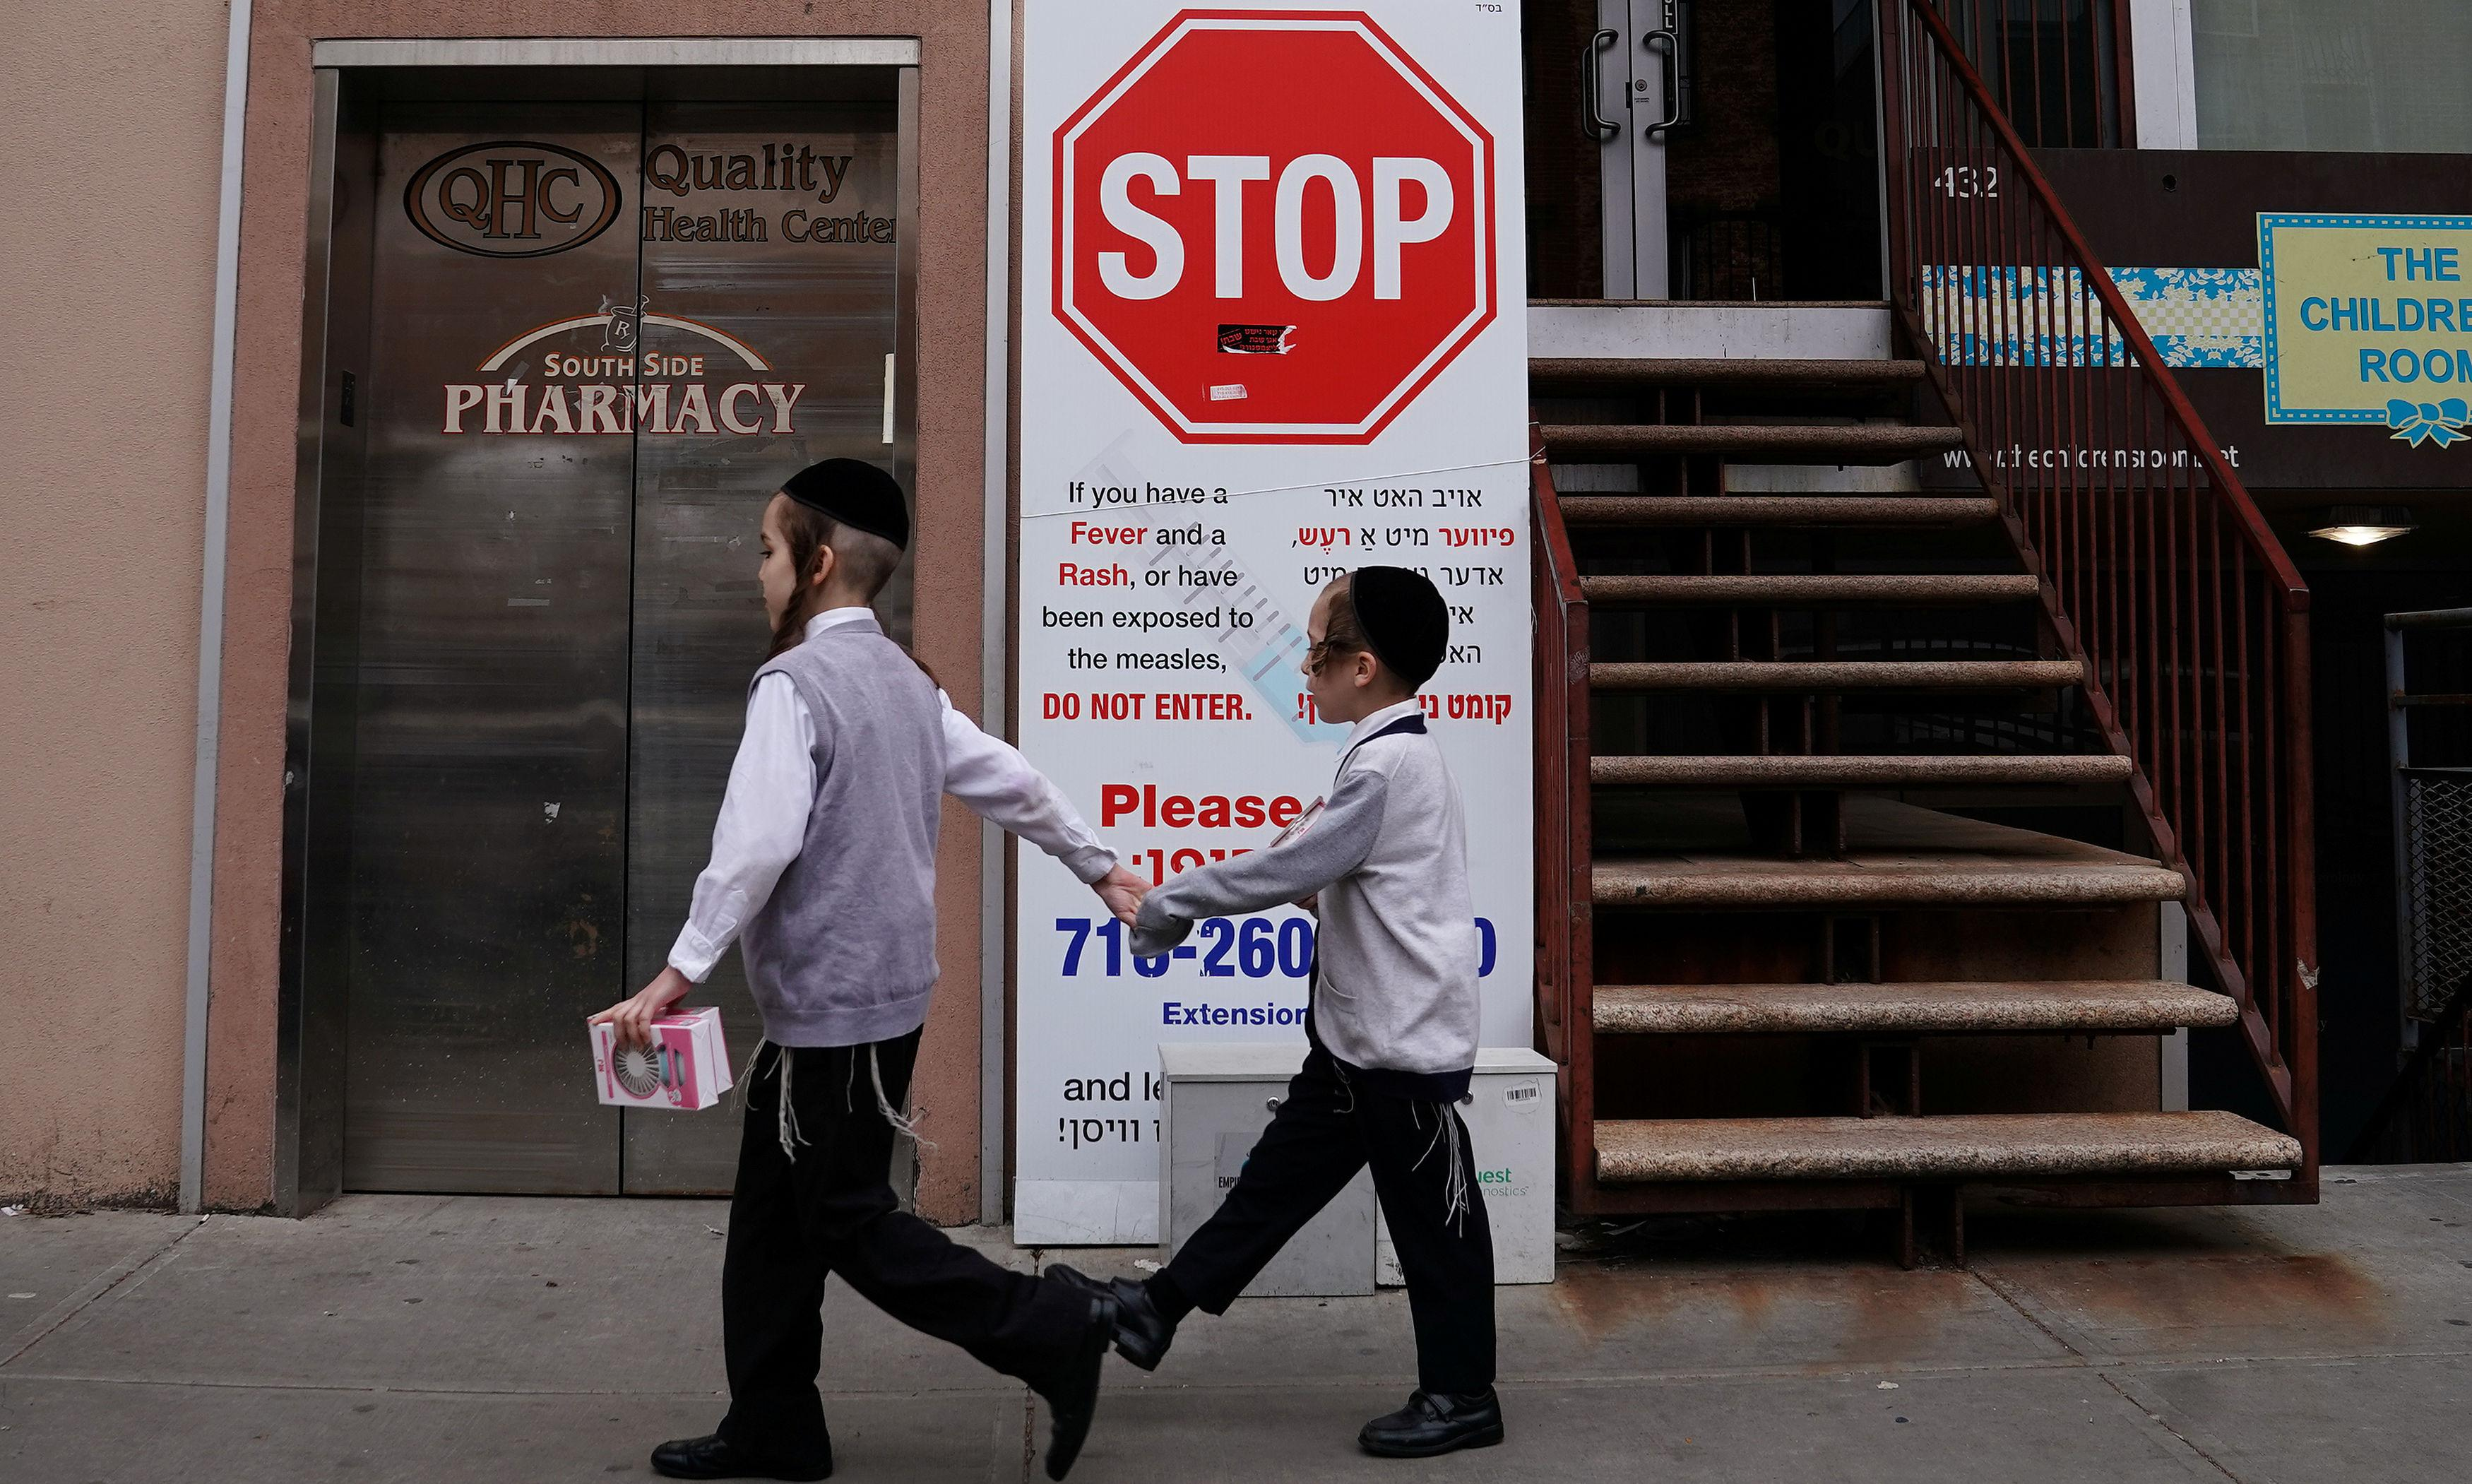 Orthodox Jewish communities face antisemitism over measles outbreak